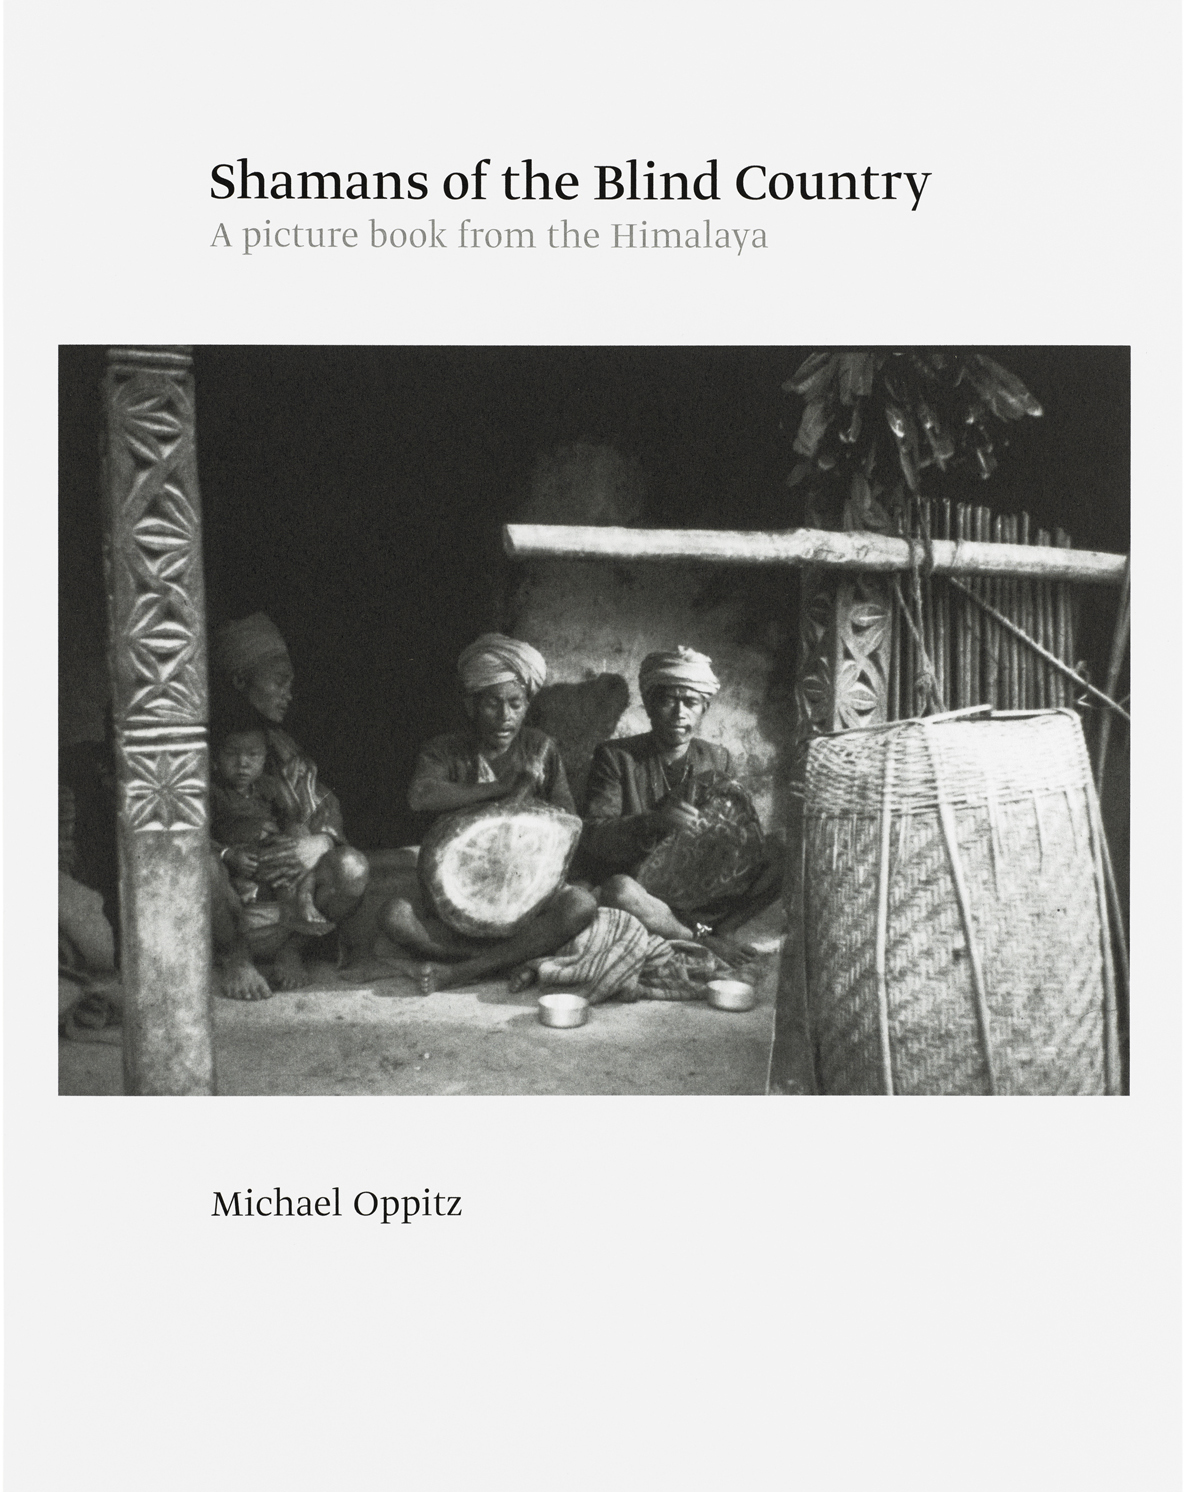 """Michael Oppitz – Shamans of the Blind Country A Picture book from the Himalaya 2021, 384 pages, hardcover, dust jacket, fully illustrated in b/w, 23 x 28,5 cm 2021, 384 pages, owrps, fully illustrated in b/w, 23 x 28,5 cm Euro 58,- (hardcover) / Euro 48,- (softcover) – This book focuses on the extraordinary mythical traditions and ritual practices in a remote community in the Himalayan mountains, studied over a long period of field research by Michael Oppitz. It is the English version of his German original, first published in 1980 by Syndikat Verlag under the title """"Schamanen im Blinden Land"""". That book came out in parallel to a film of the same name, today considered a classic. Now appearing in English as """"Shamans of the Blind Country. A picture book from the Himalaya"""" the new version extends the old by more than a third of the original documentary photographs; it traces the historical changes that have transformed this mountainous region of Nepal over the last four decades in an extensive epilogue; and it suggests a wider context of ritual healing in the Himalaya by appending a selection of early pictures of shamanism in Siberia. This English version is published in both hardcover and softcover editions."""